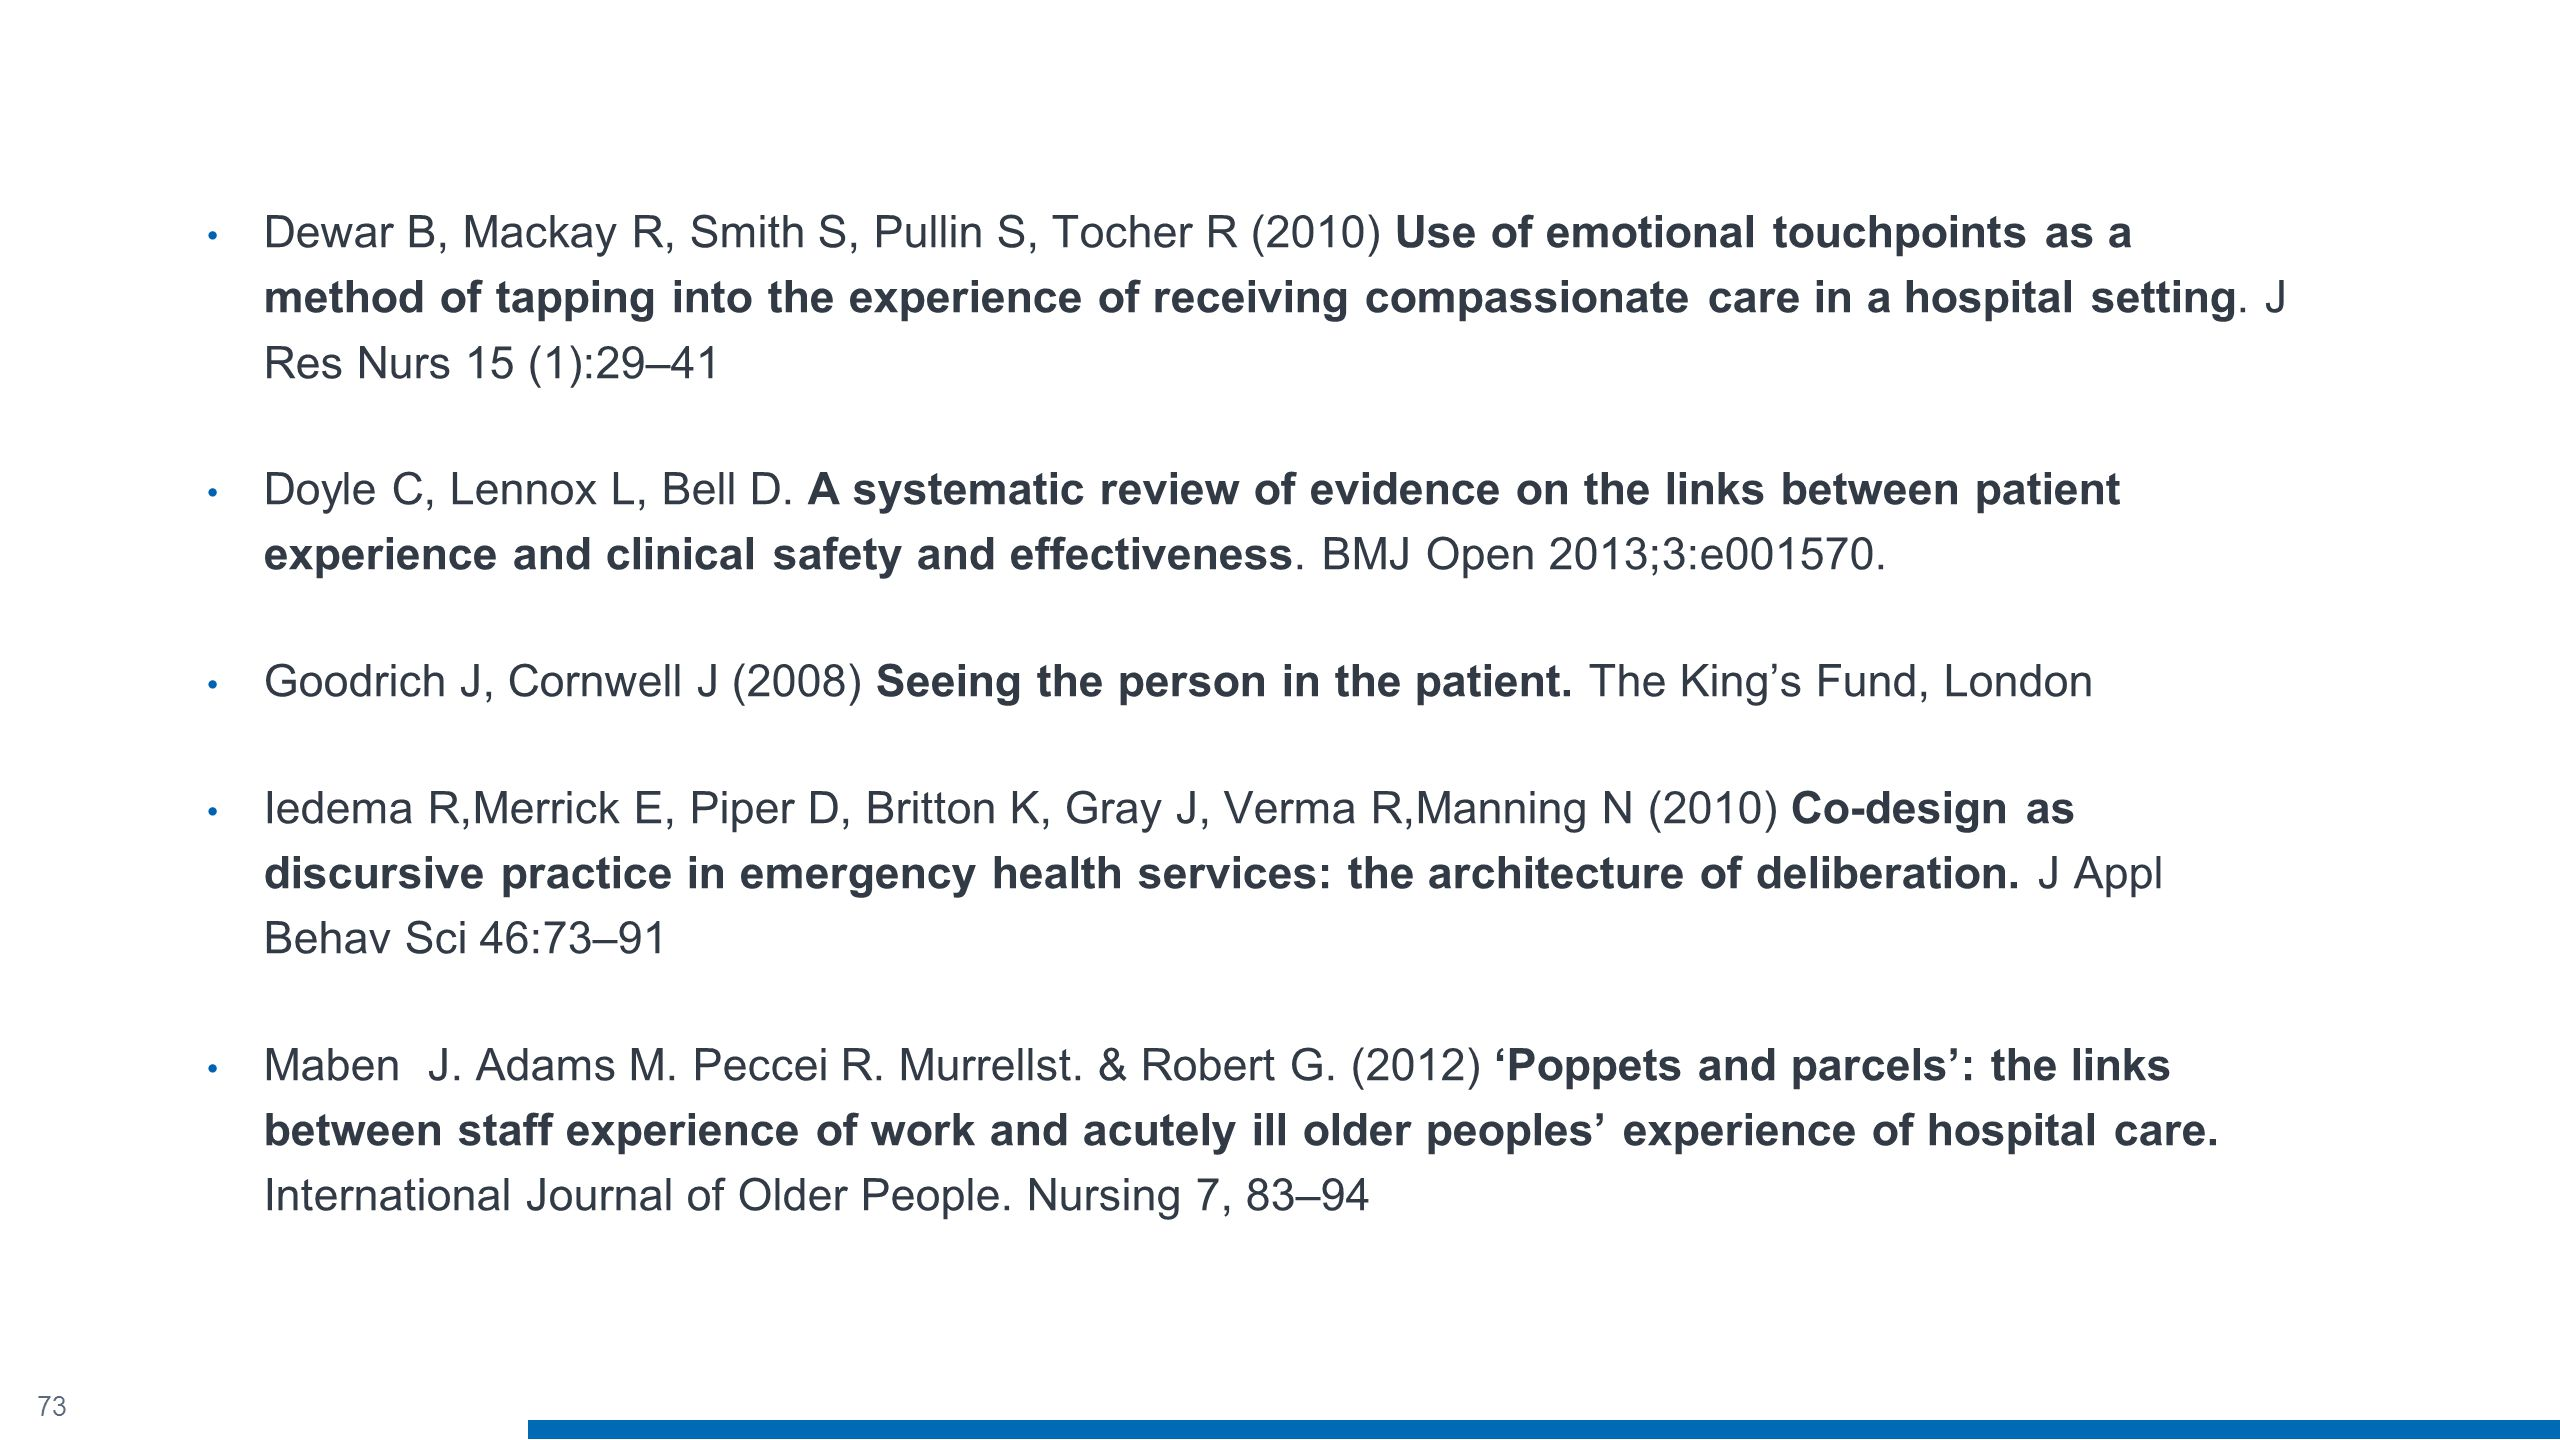 73 Dewar B, Mackay R, Smith S, Pullin S, Tocher R (2010) Use of emotional touchpoints as a method of tapping into the experience of receiving compassionate care in a hospital setting.